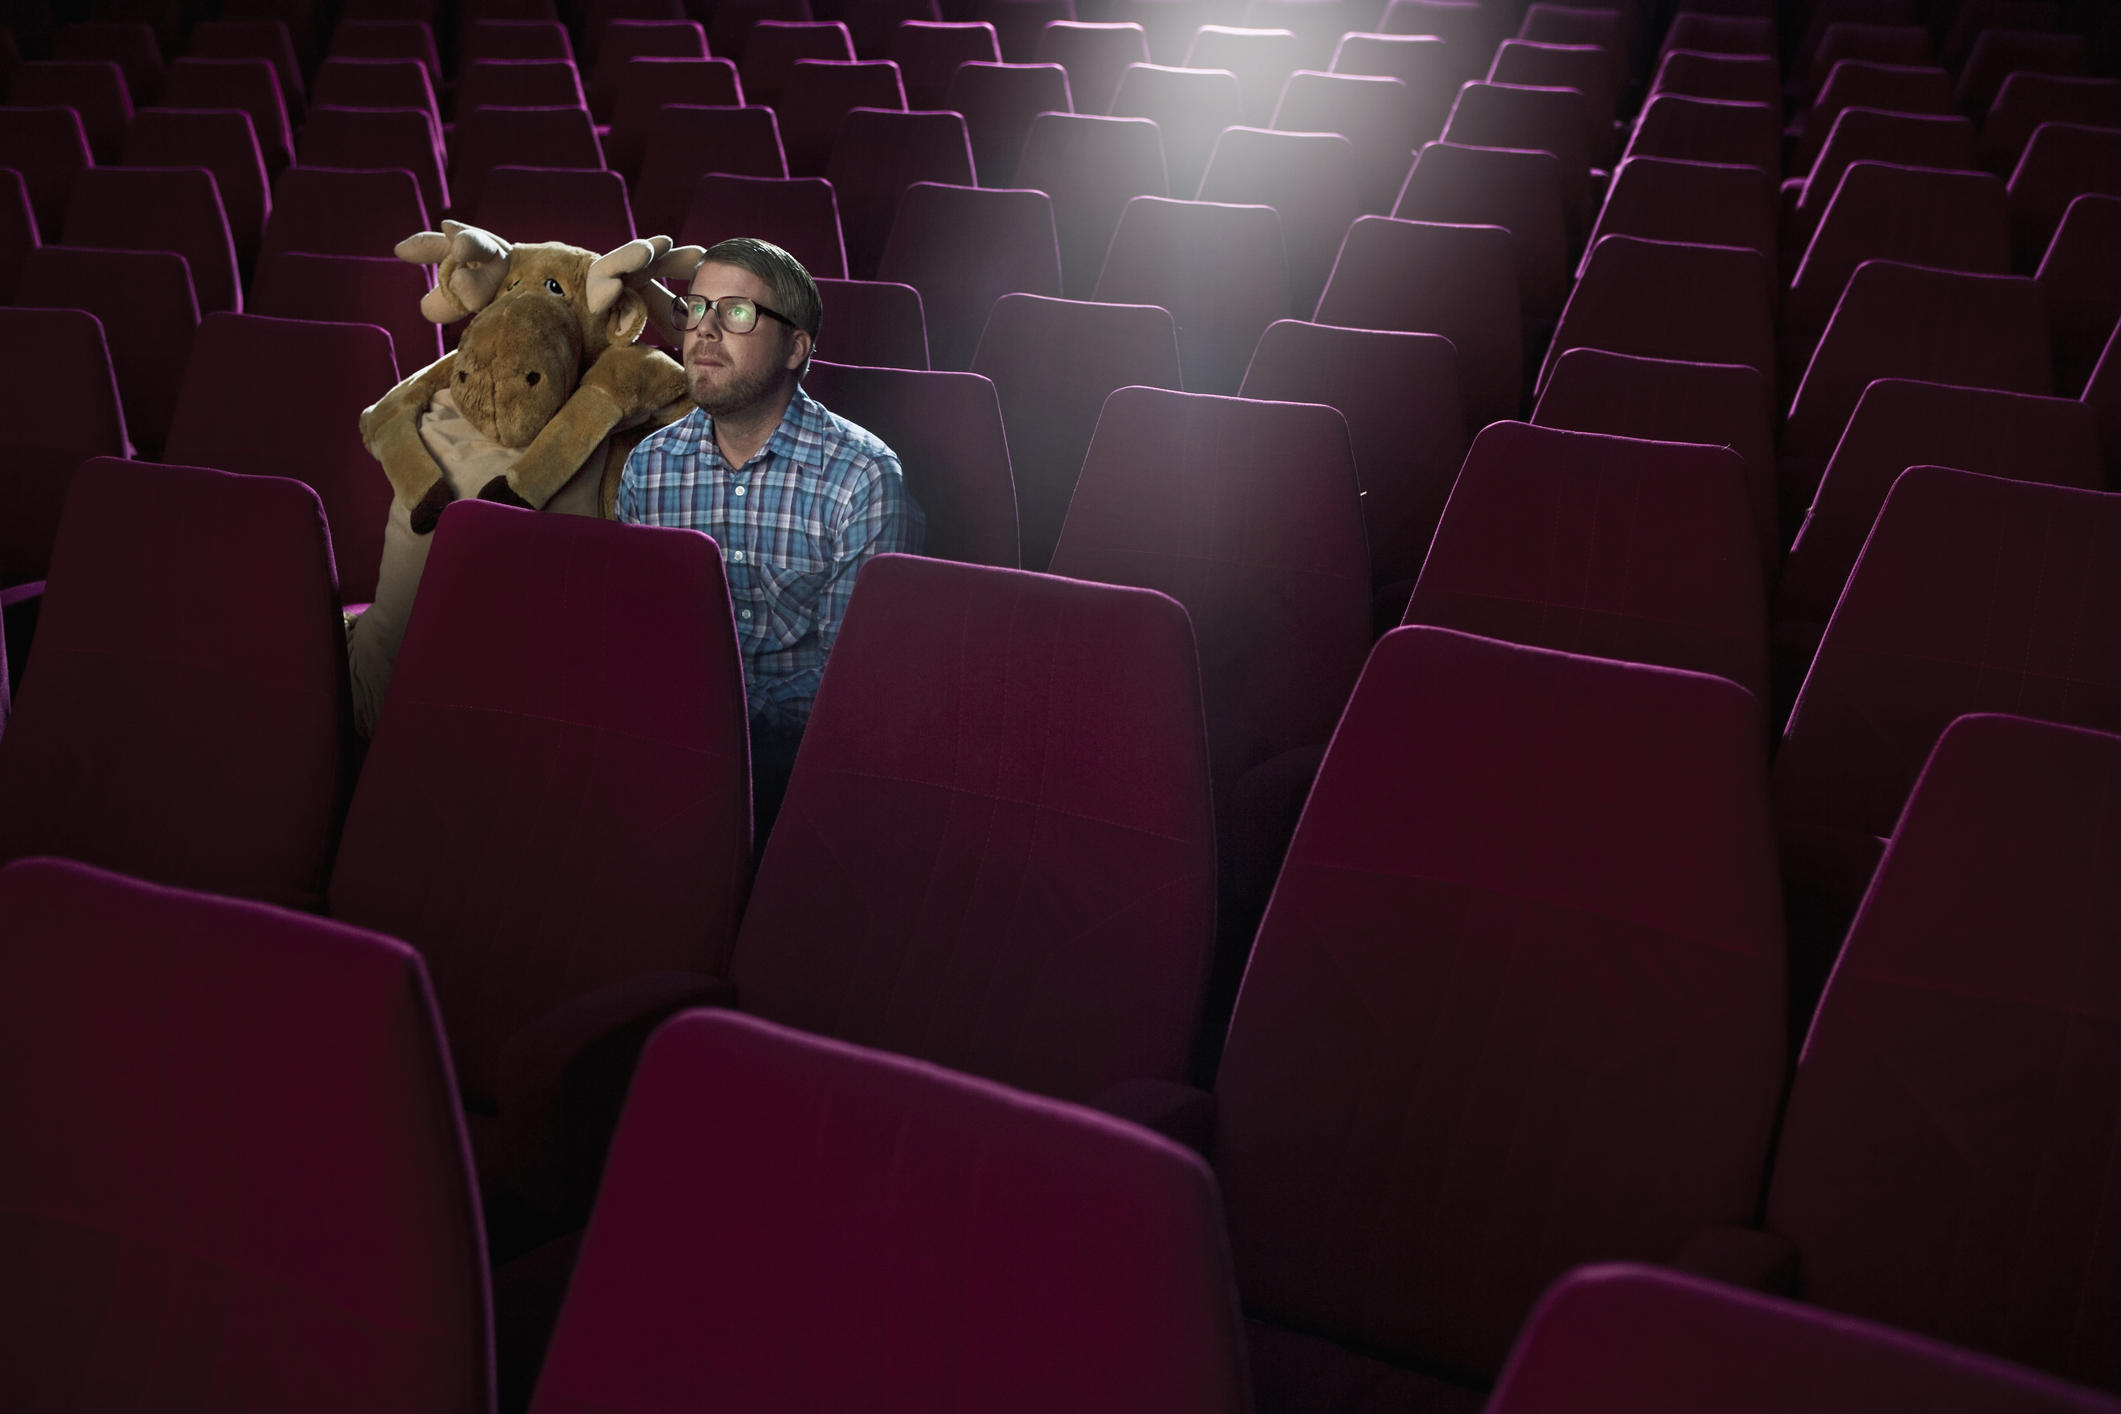 Man on a date at the movies, with a moose